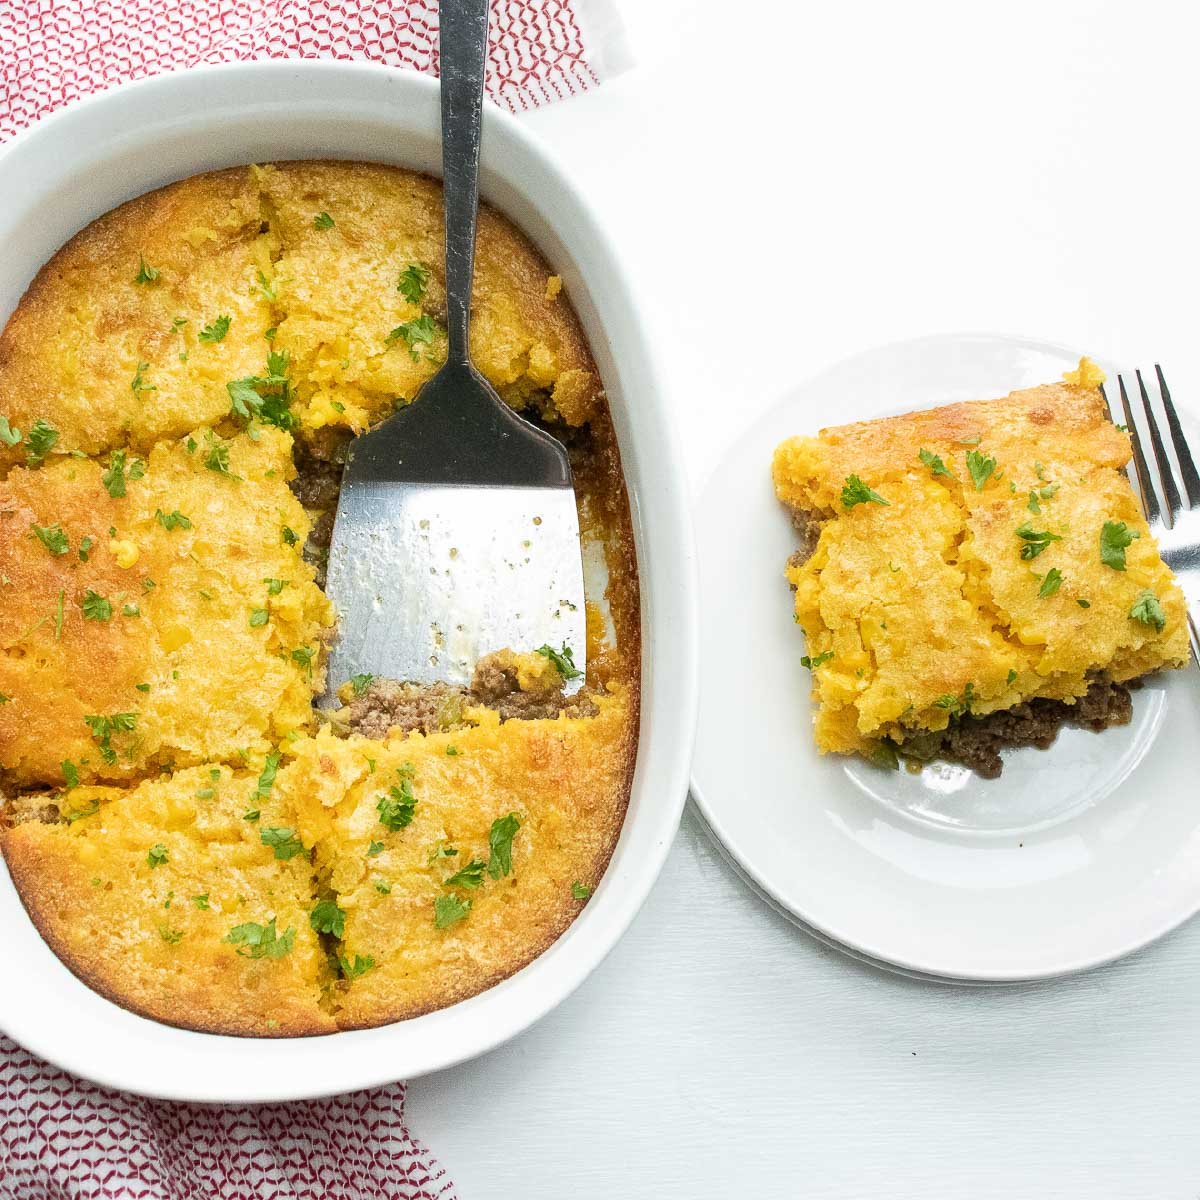 Casserole Burger Bake in a white casserole dish. One piece is cut out and sitting on a white plate next to the casserole. There is a spatula in the casserole dish and a fork on the plate.